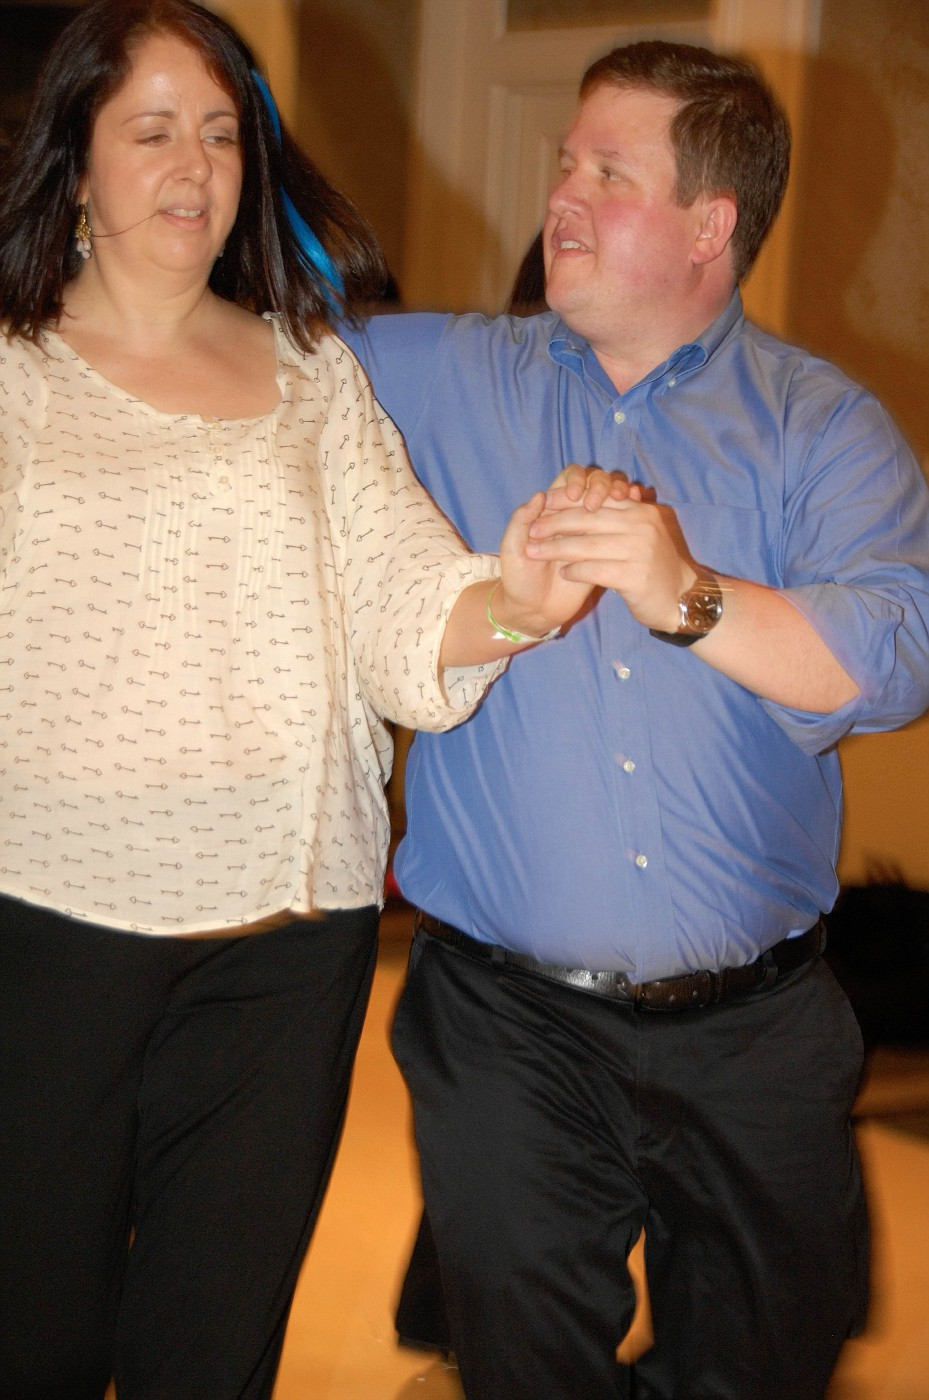 Darren Roeder dancing West Coast Swing Newcomer Jack and Jill at Swingin Into Spring